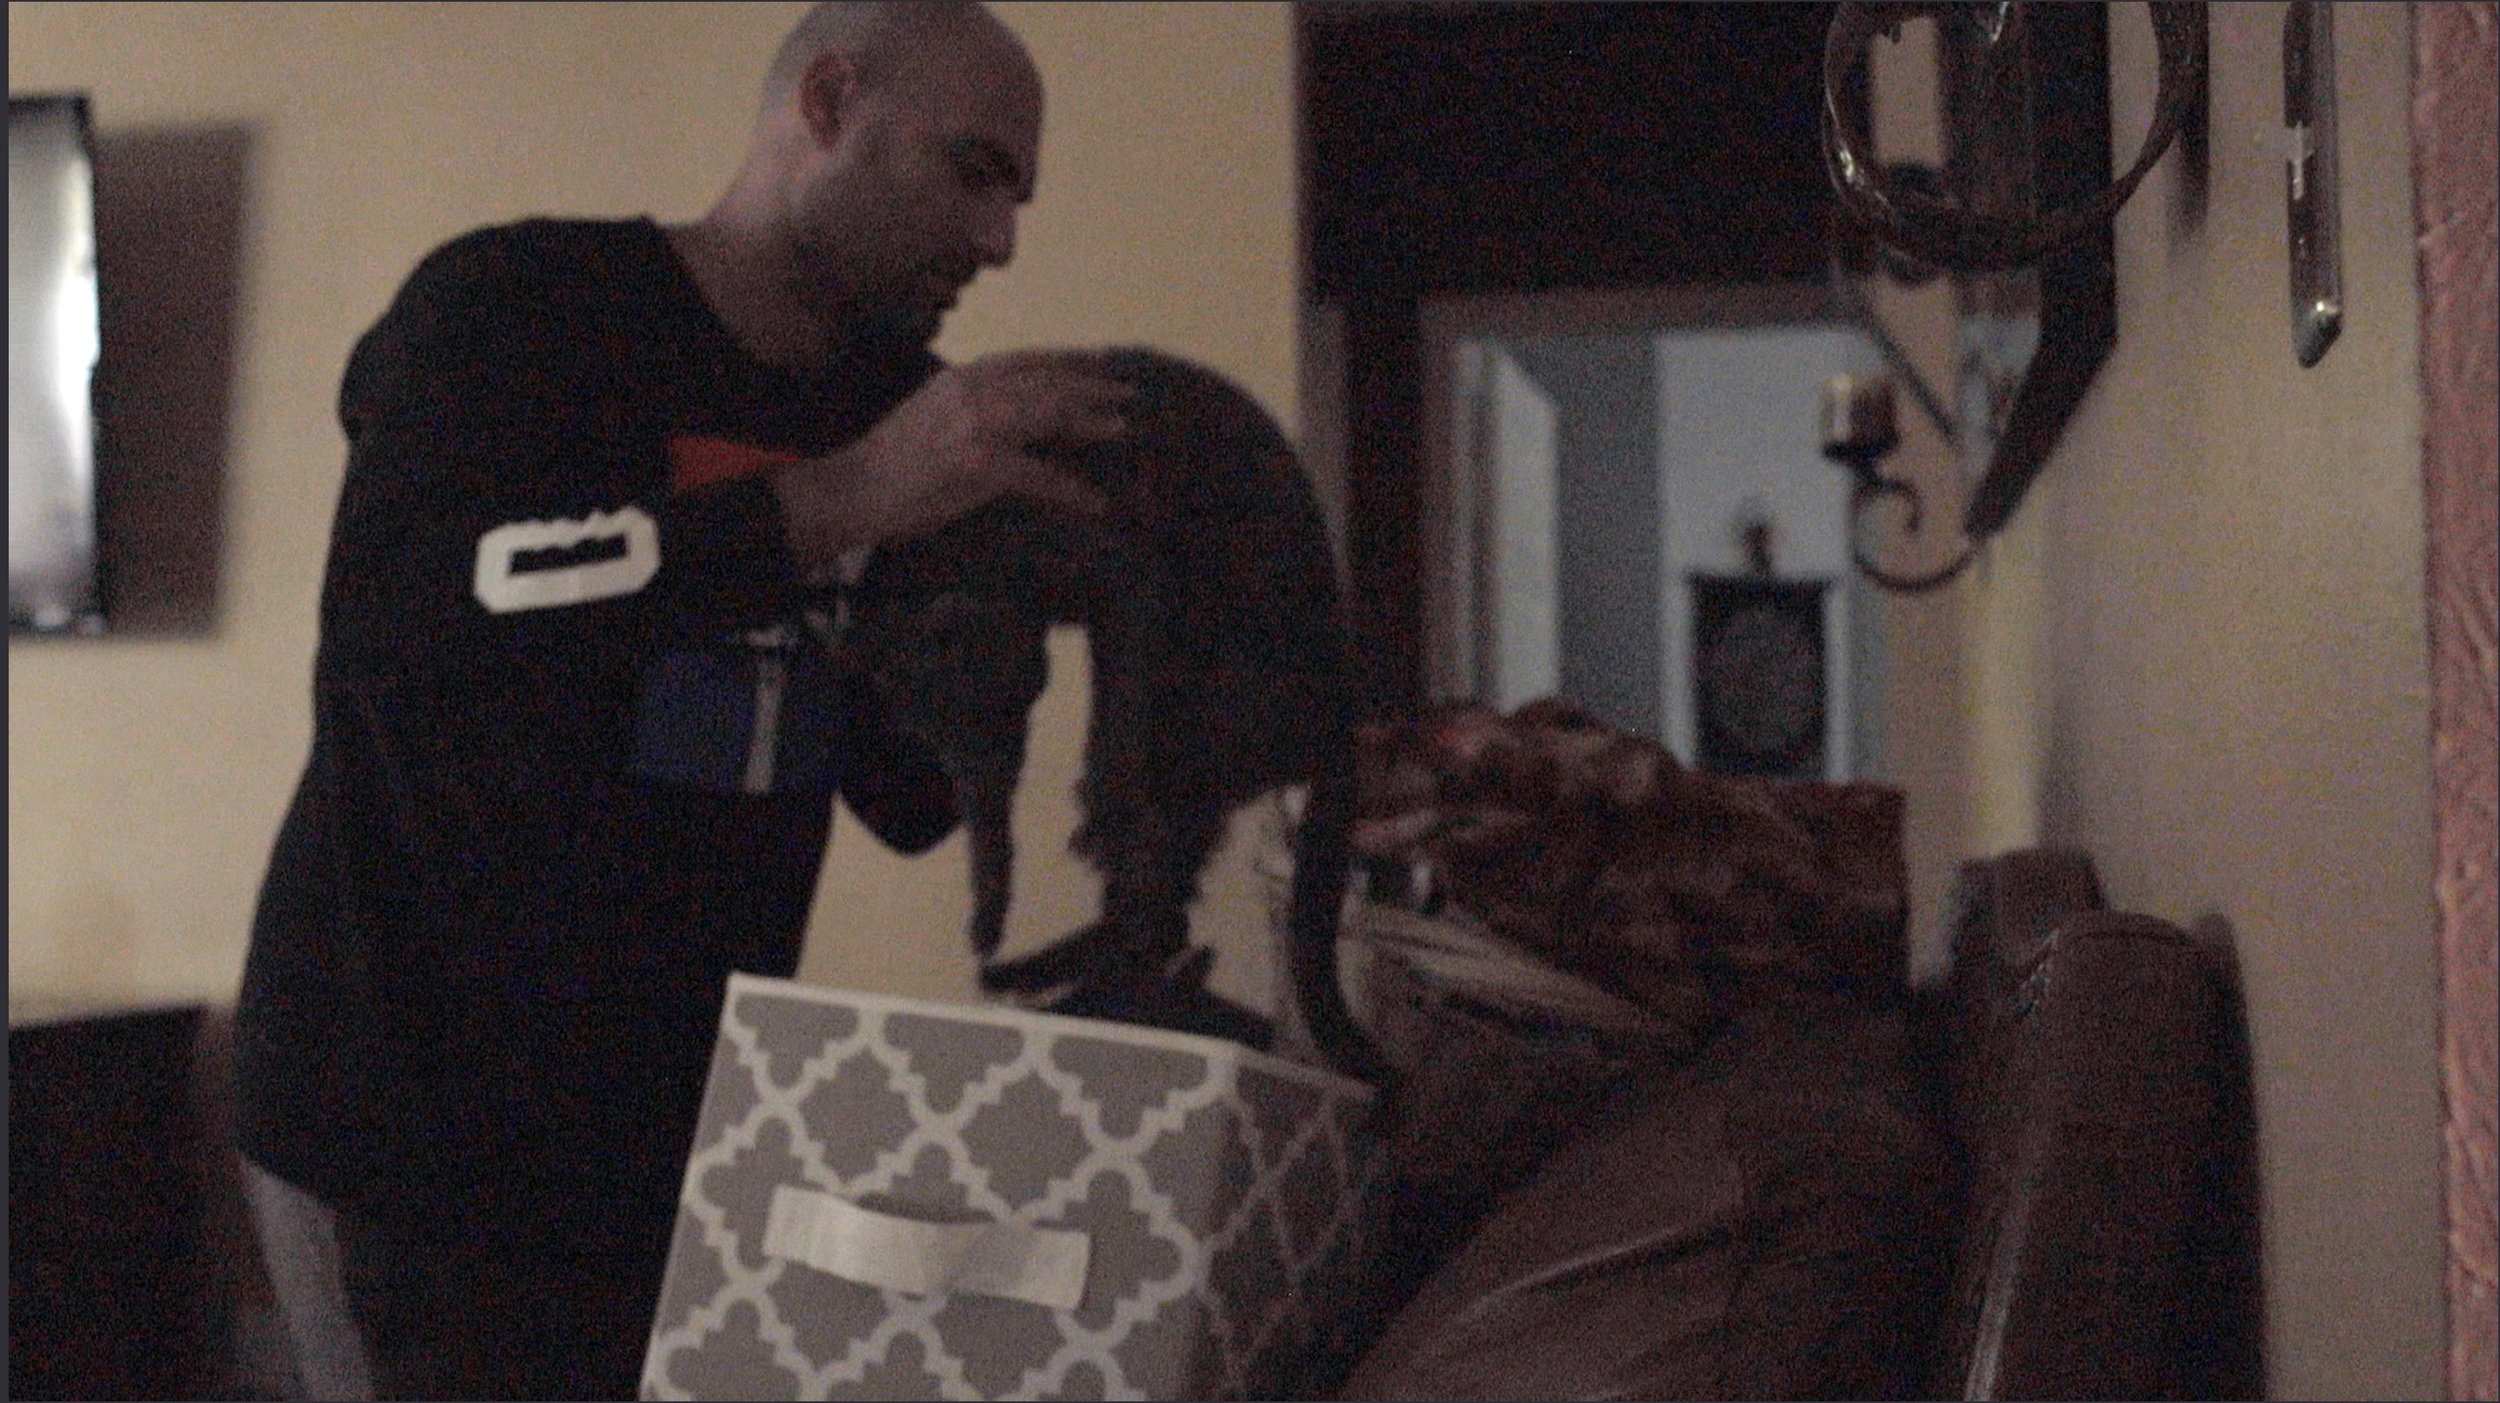 A frame grab of the cat being put into a basket.